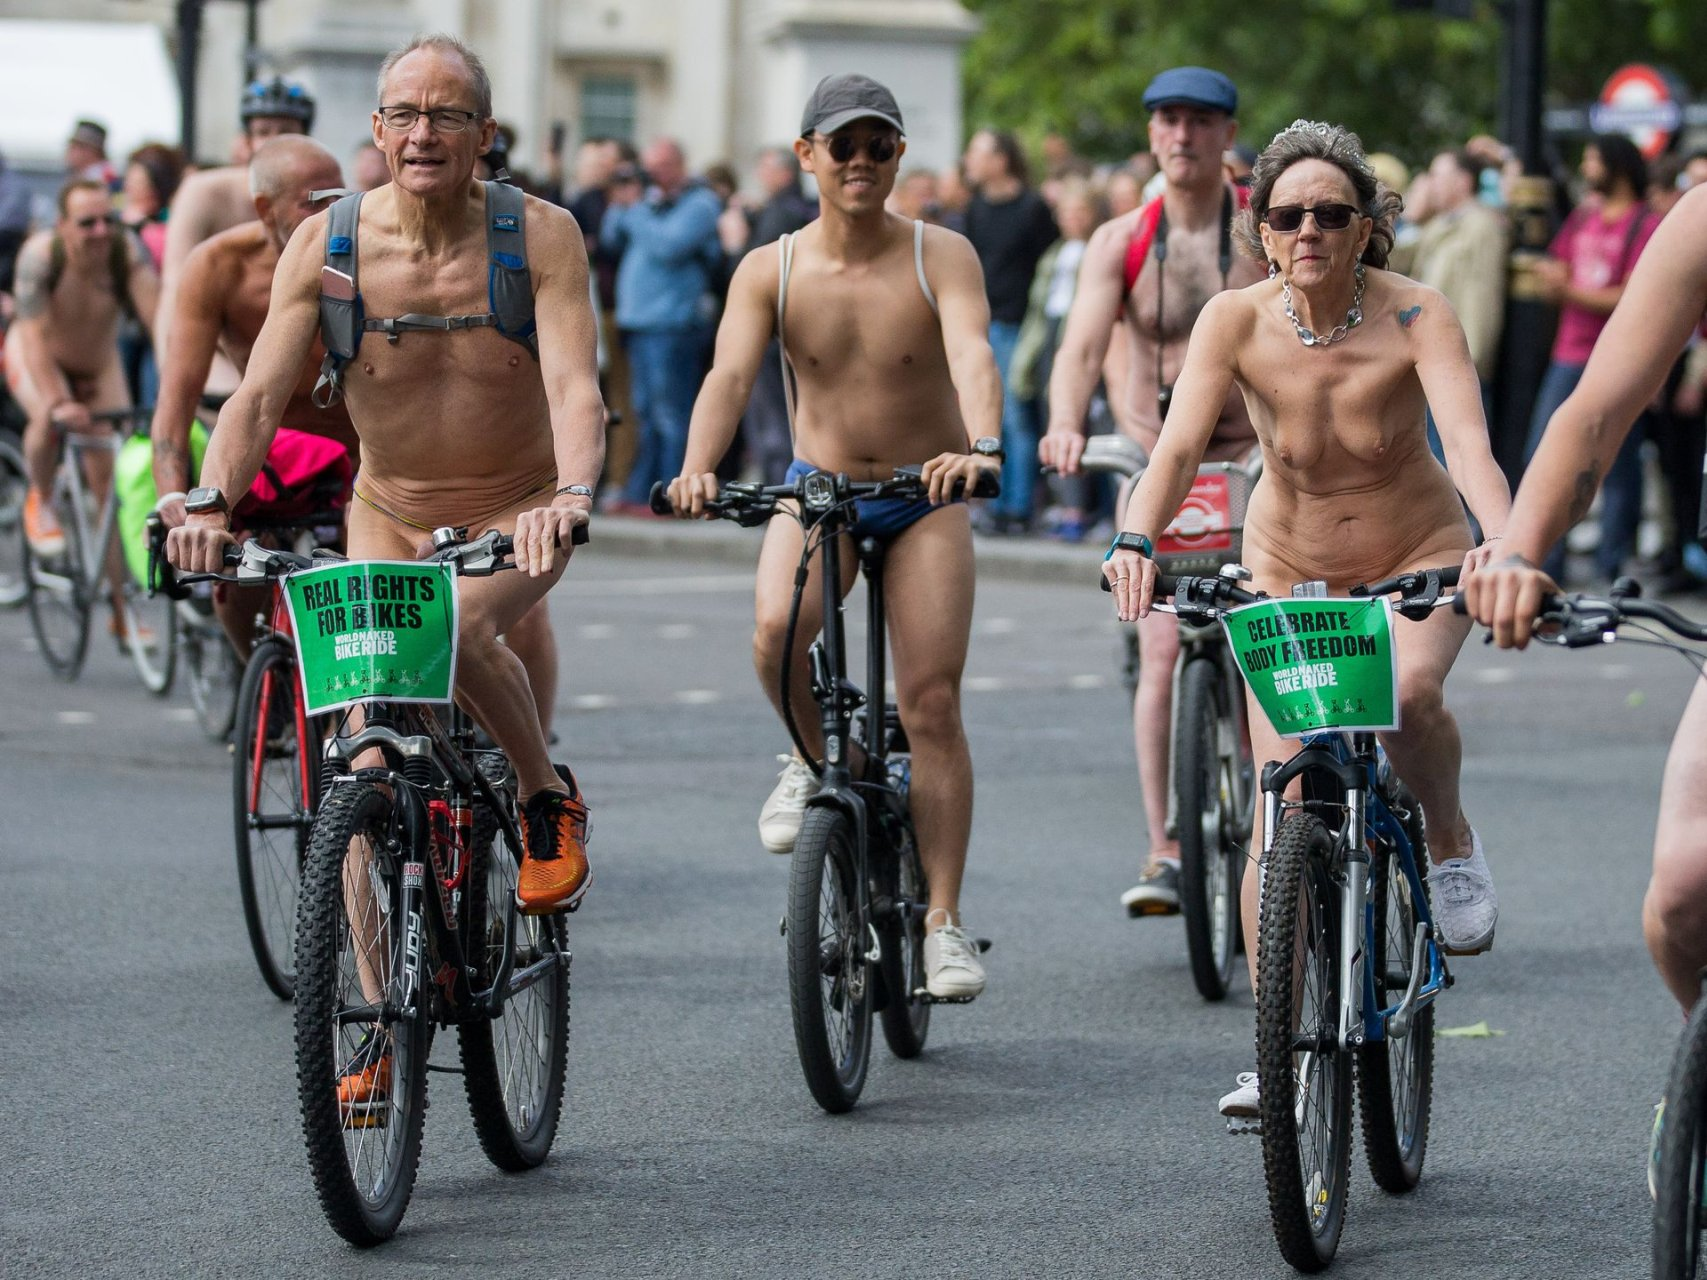 Women's Nude Cycling Kit Labelled Unacceptable